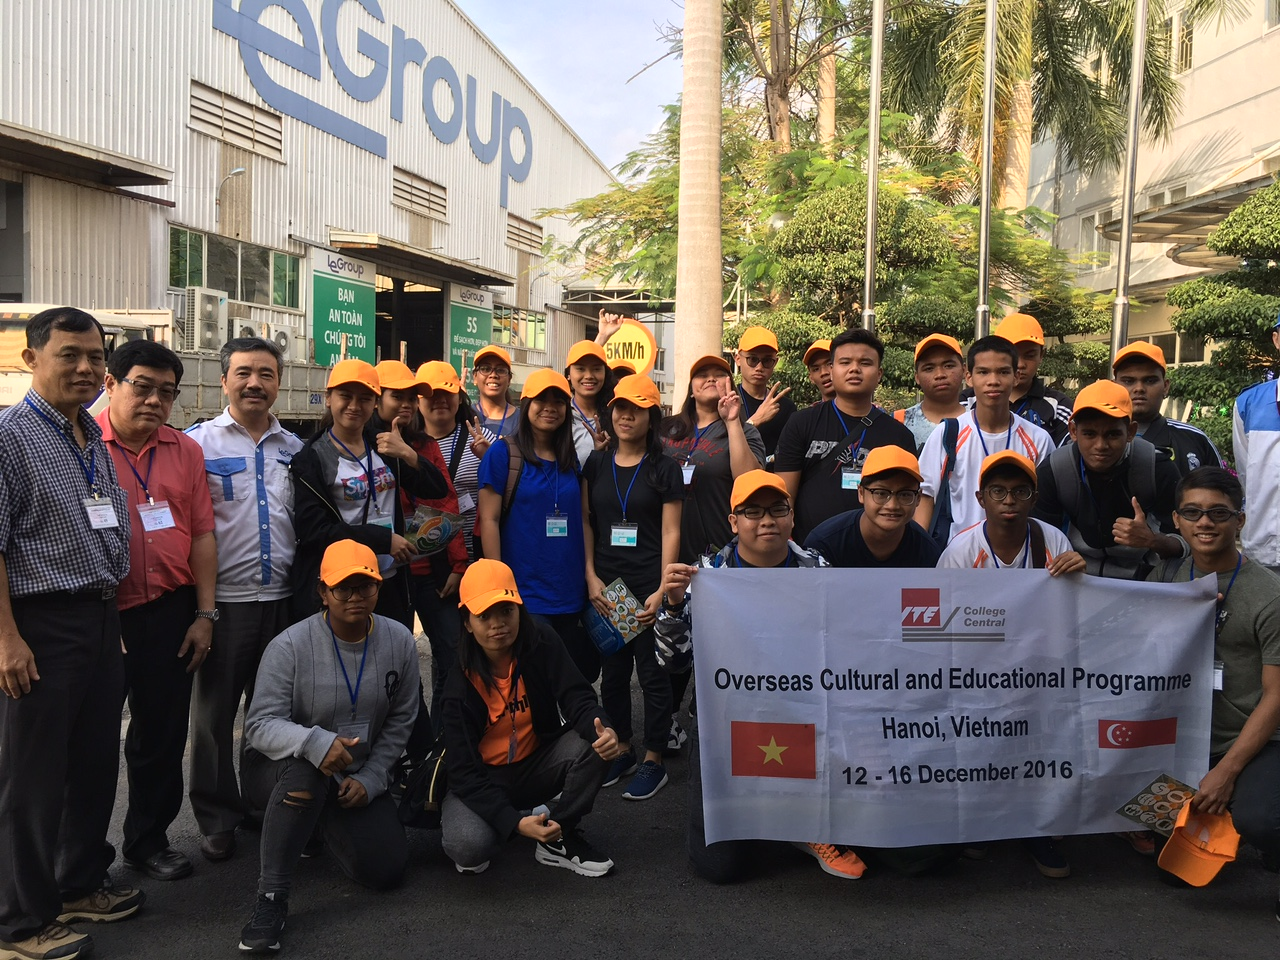 Students from the Singapore Institute of Technical Education (ITE) visit LeGroup in their field trip to Vietnam.